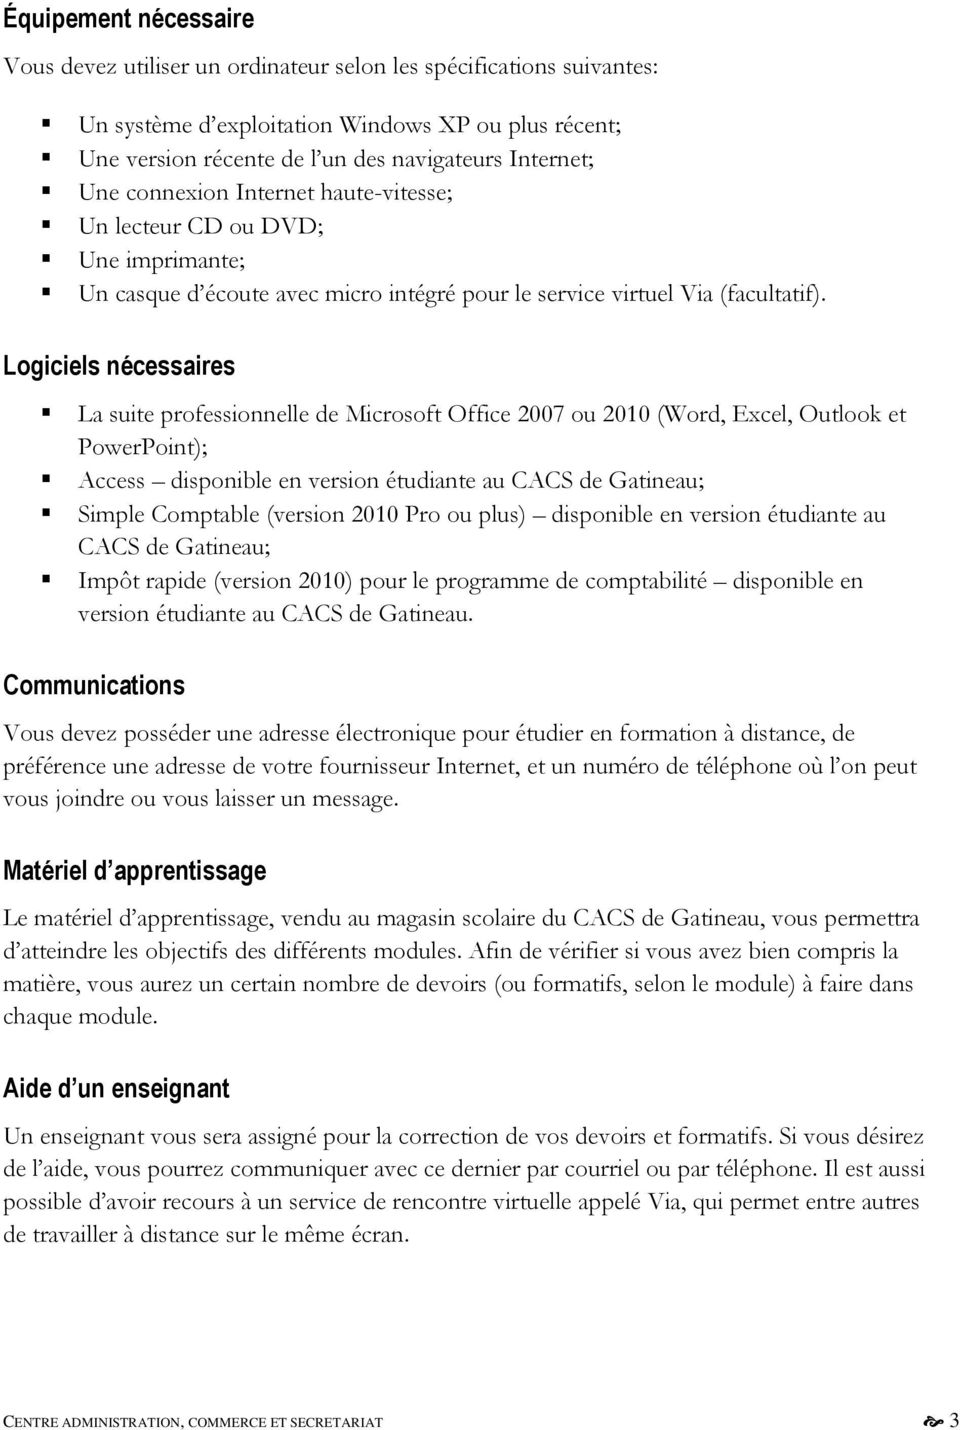 Logiciels nécessaires La suite professionnelle de Microsoft Office 2007 ou 2010 (Word, Excel, Outlook et PowerPoint); Access disponible en version étudiante au CACS de Gatineau; Simple Comptable